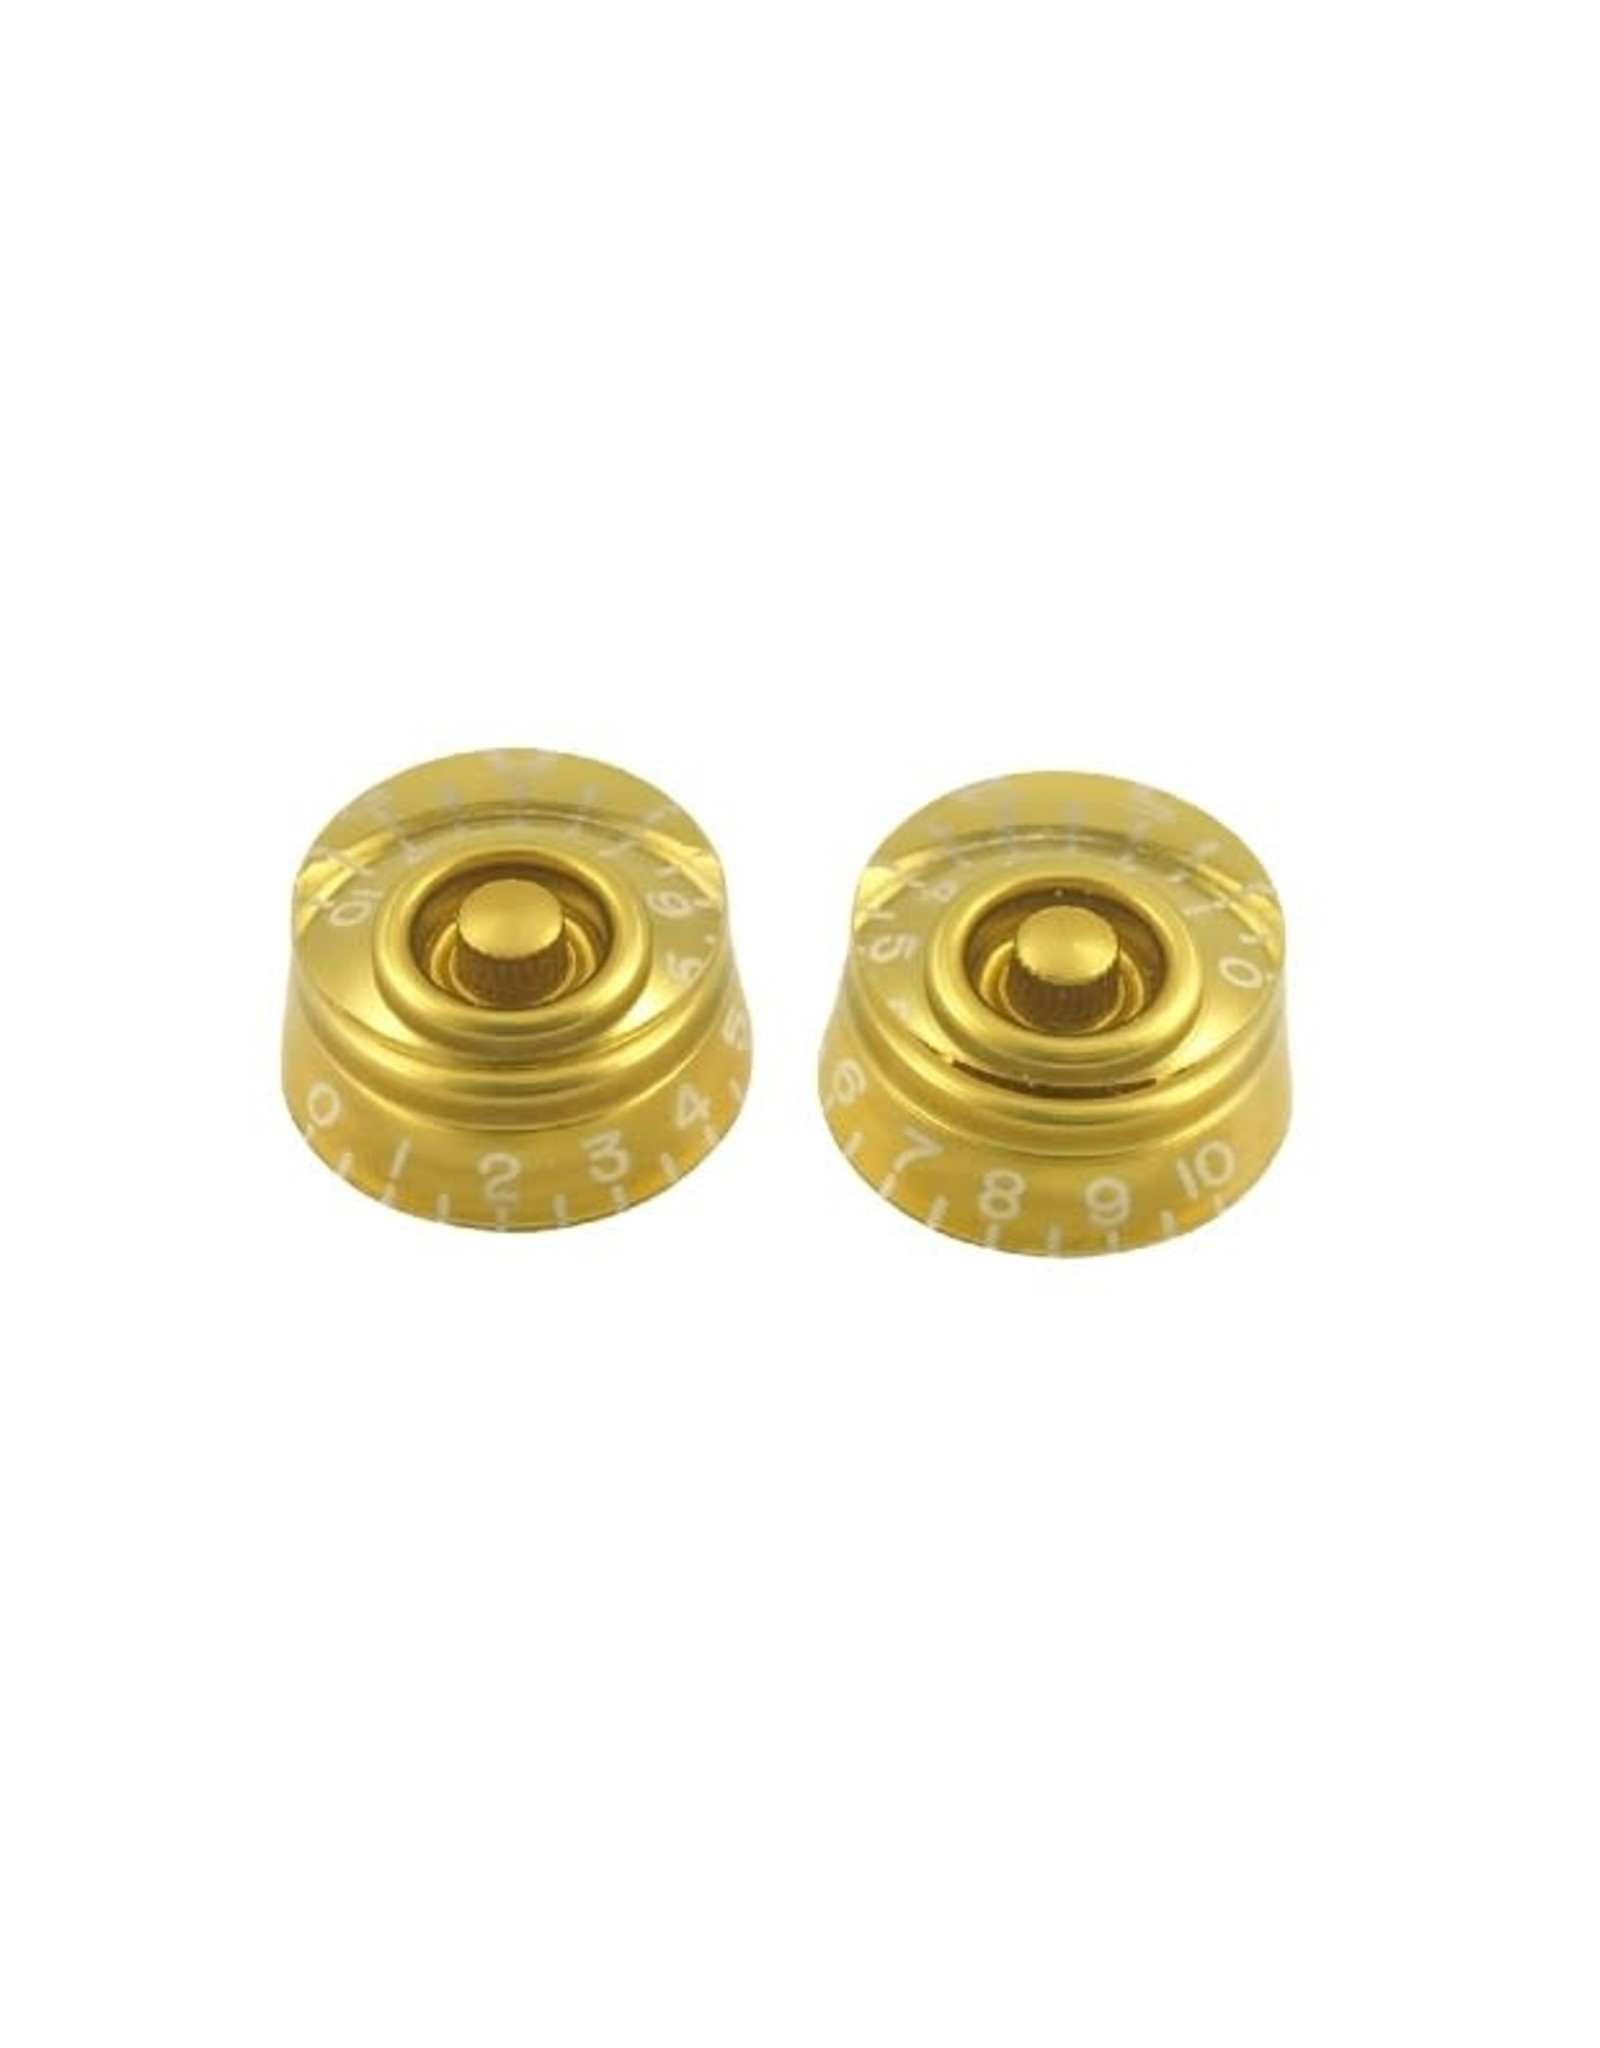 WD Music Products WD Speed Knob Set Of 2 Gold